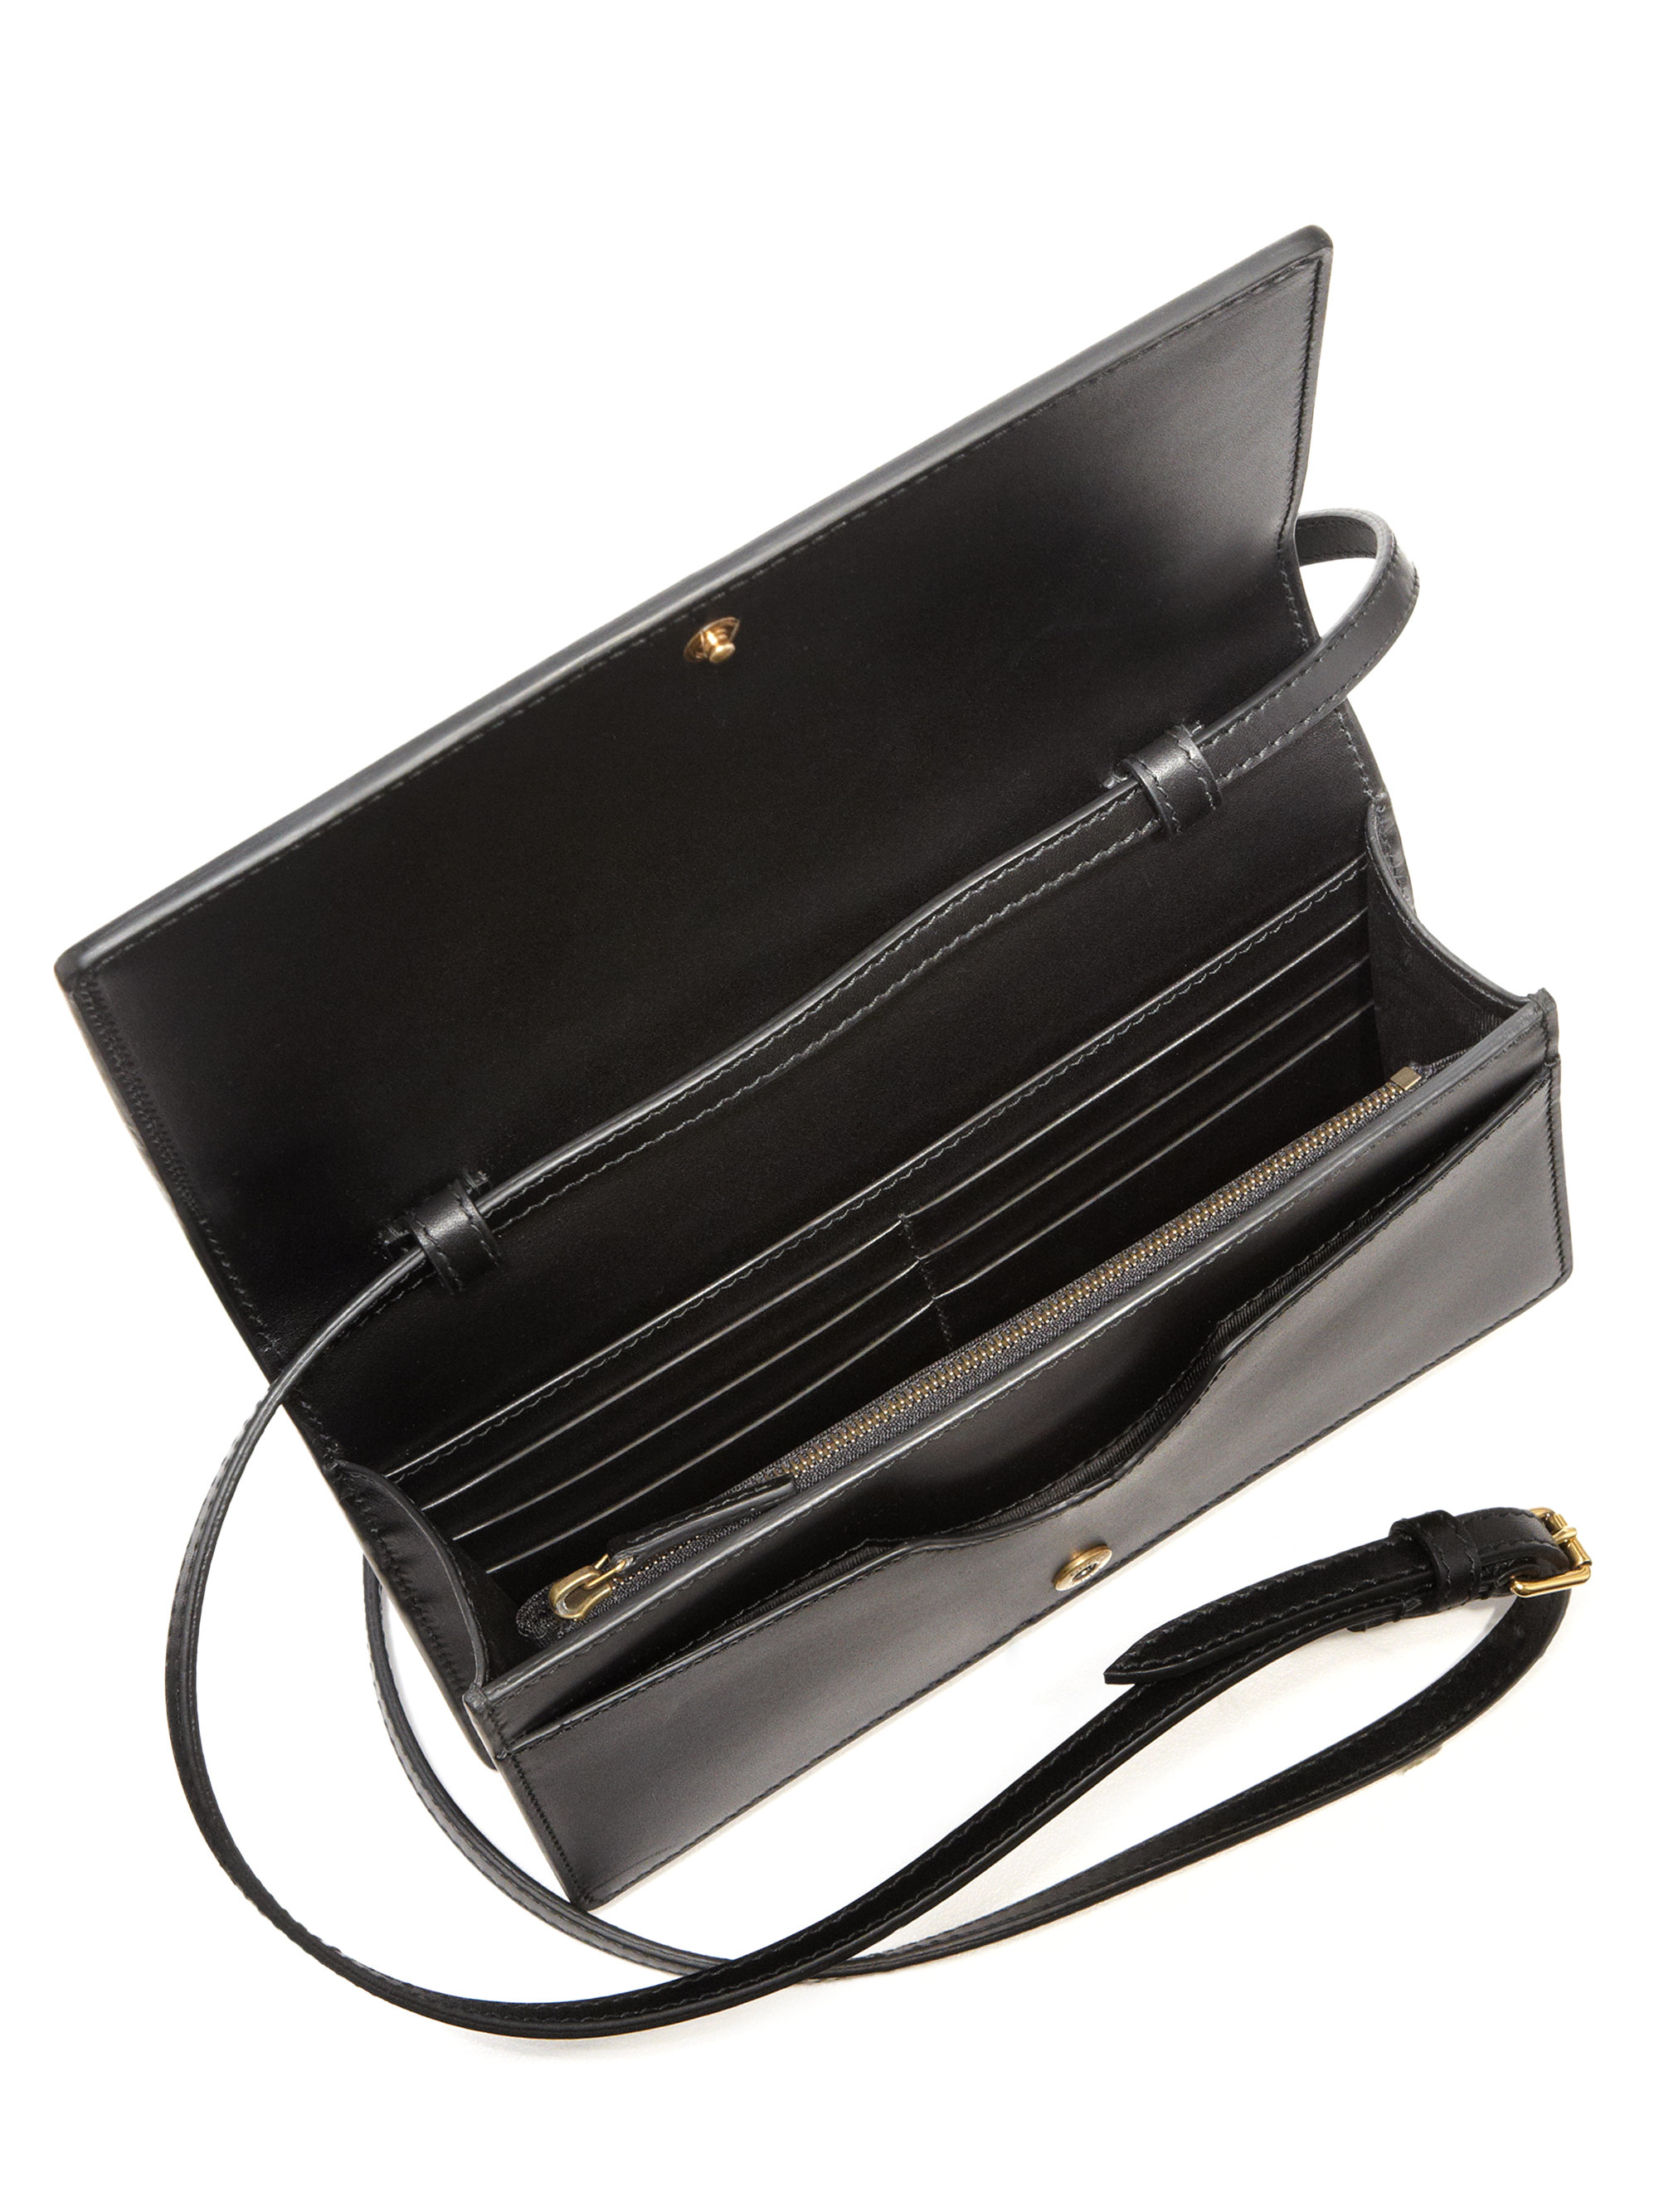 eed4a19ba476 Gucci Vintage Web Wallet With Strap | Stanford Center for ...